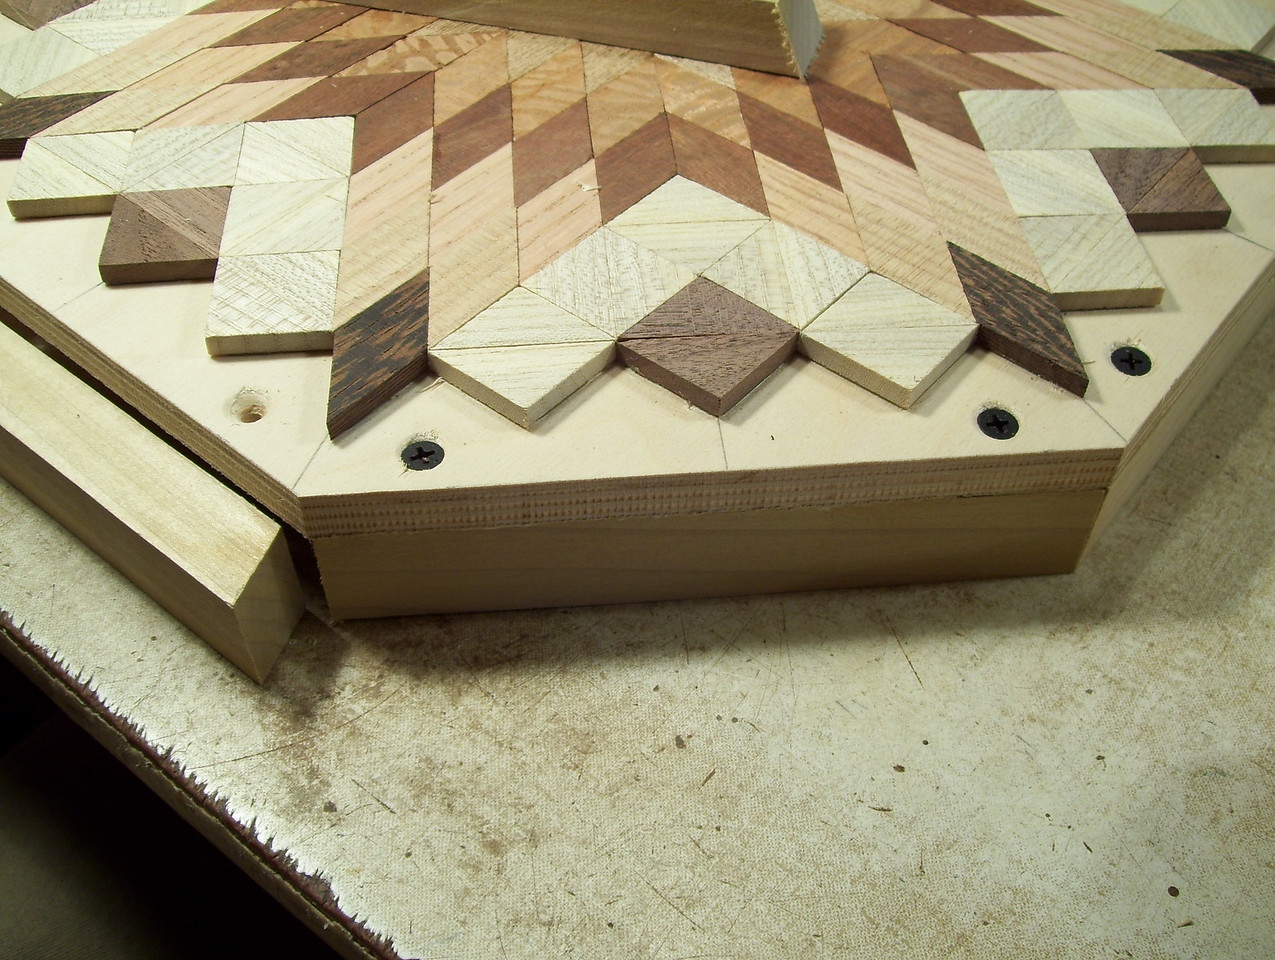 Making a Lazy Susan #30<br /> I now tilt the table on the foot powered table saw and cut the boards, one at a time, that will be glued and screwed around the edge of the lazy susan.